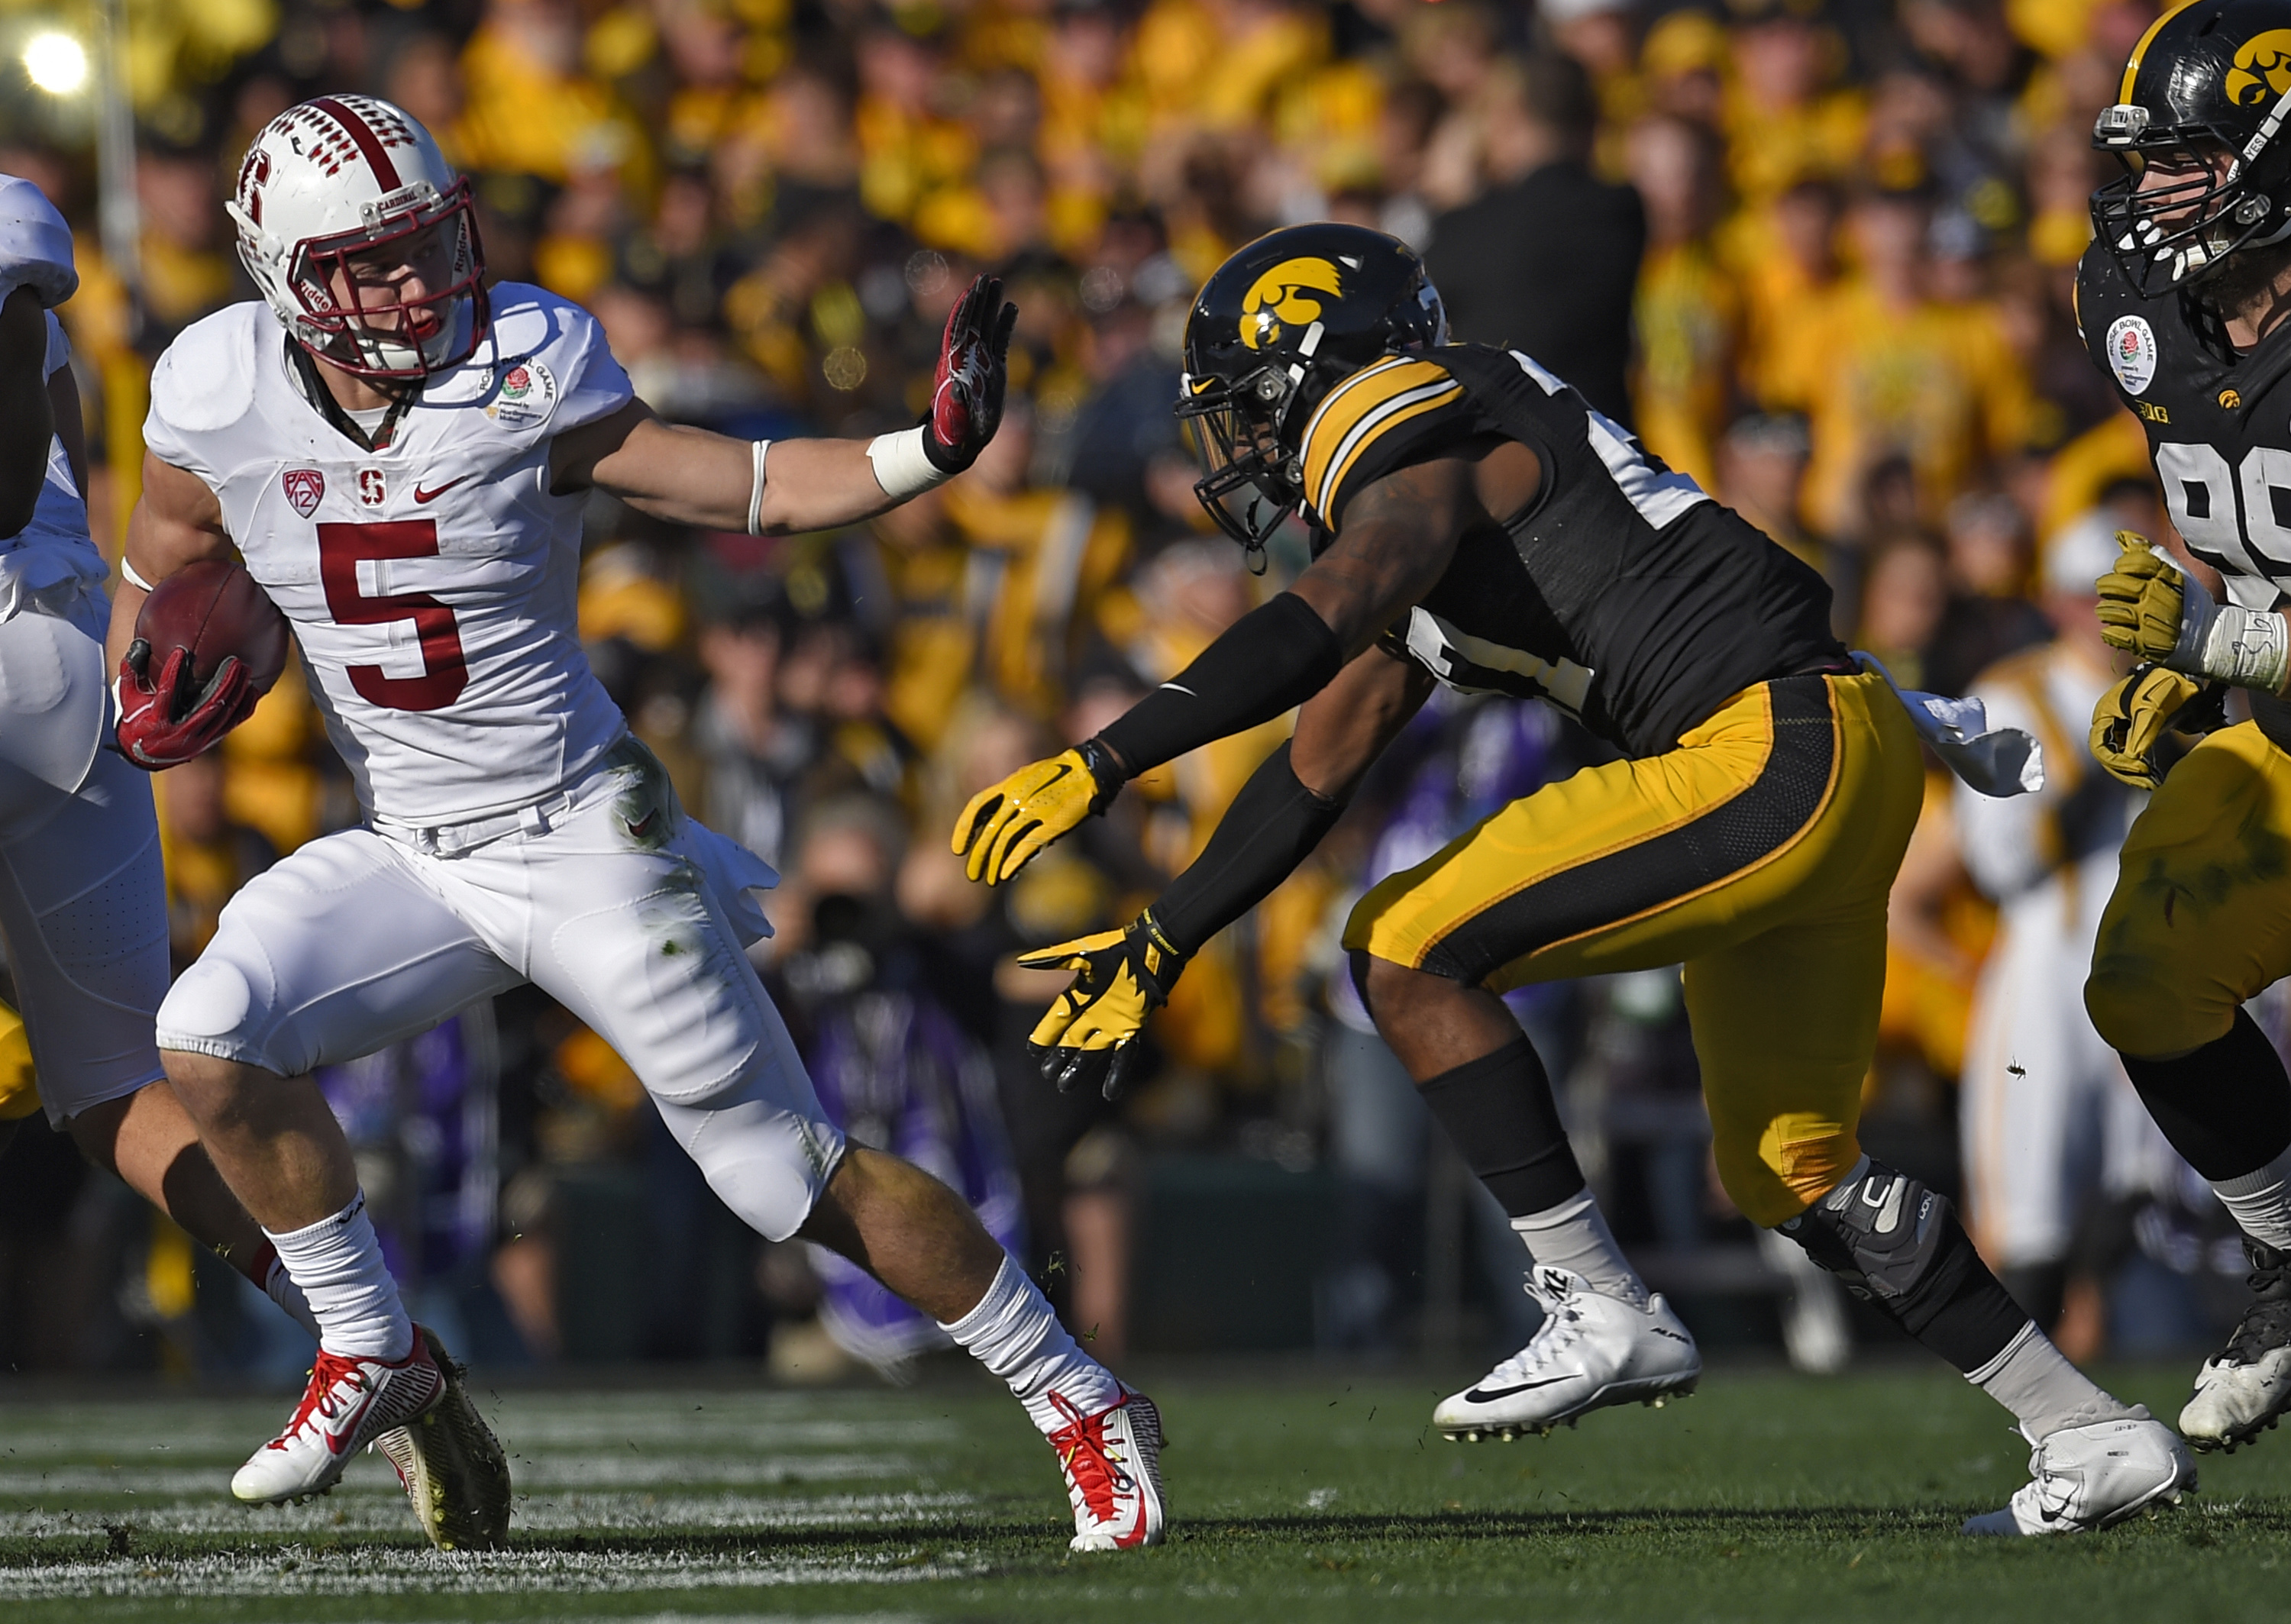 FILE - In this Jan. 1, 2016, file photo, Stanford running back Christian McCaffrey, left, runs past Iowa defensive back Jordan Lomax during the first half of the Rose Bowl NCAA college football game, in Pasadena, Calif. Now here's a scary thought for defe